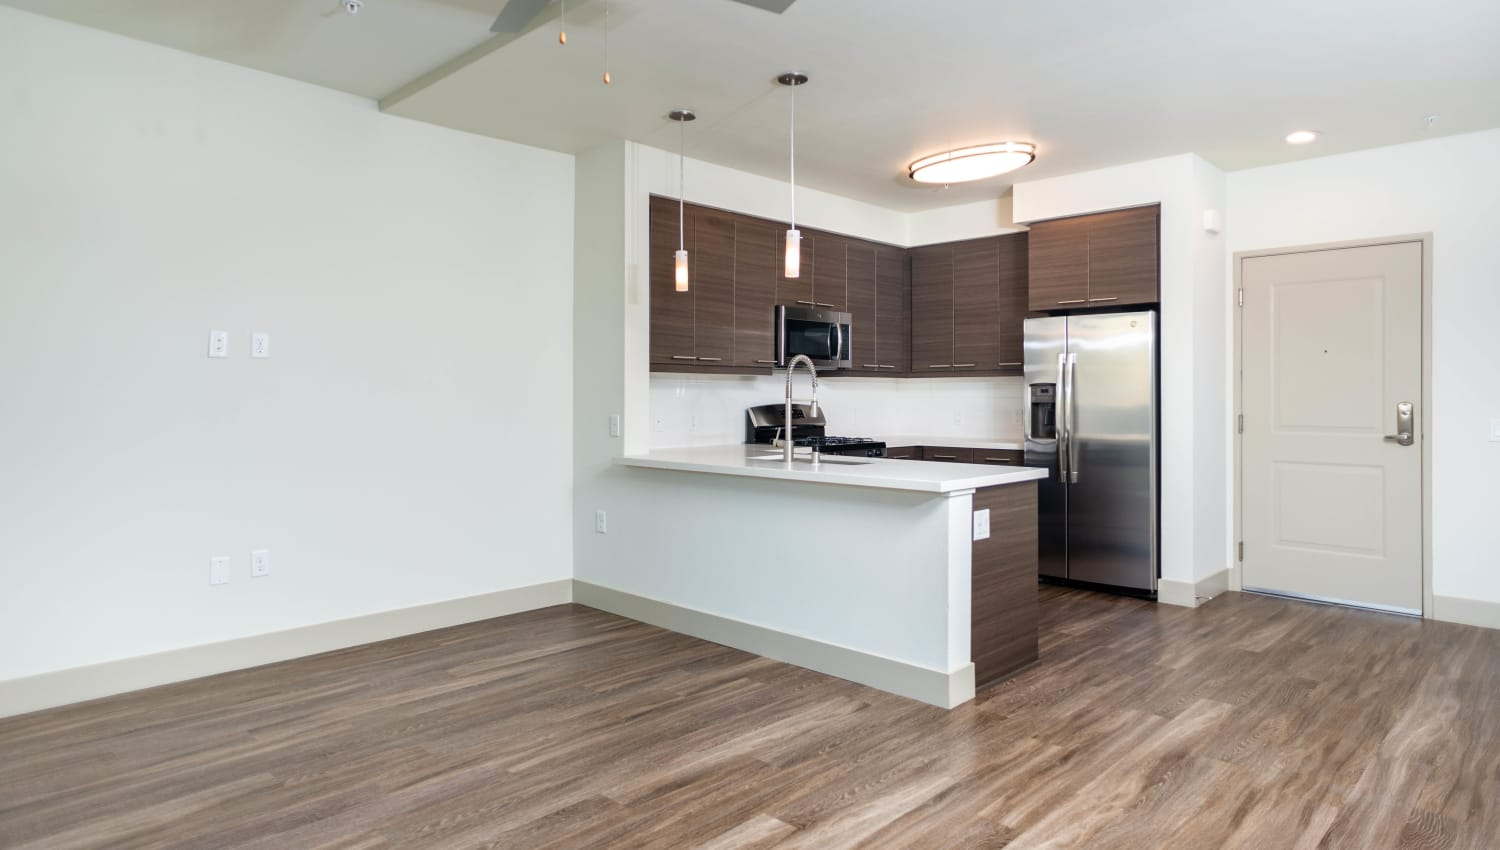 Hardwood flooring and a ceiling fan in the open concept living area of a model apartment at Fusion Apartments in Irvine, California